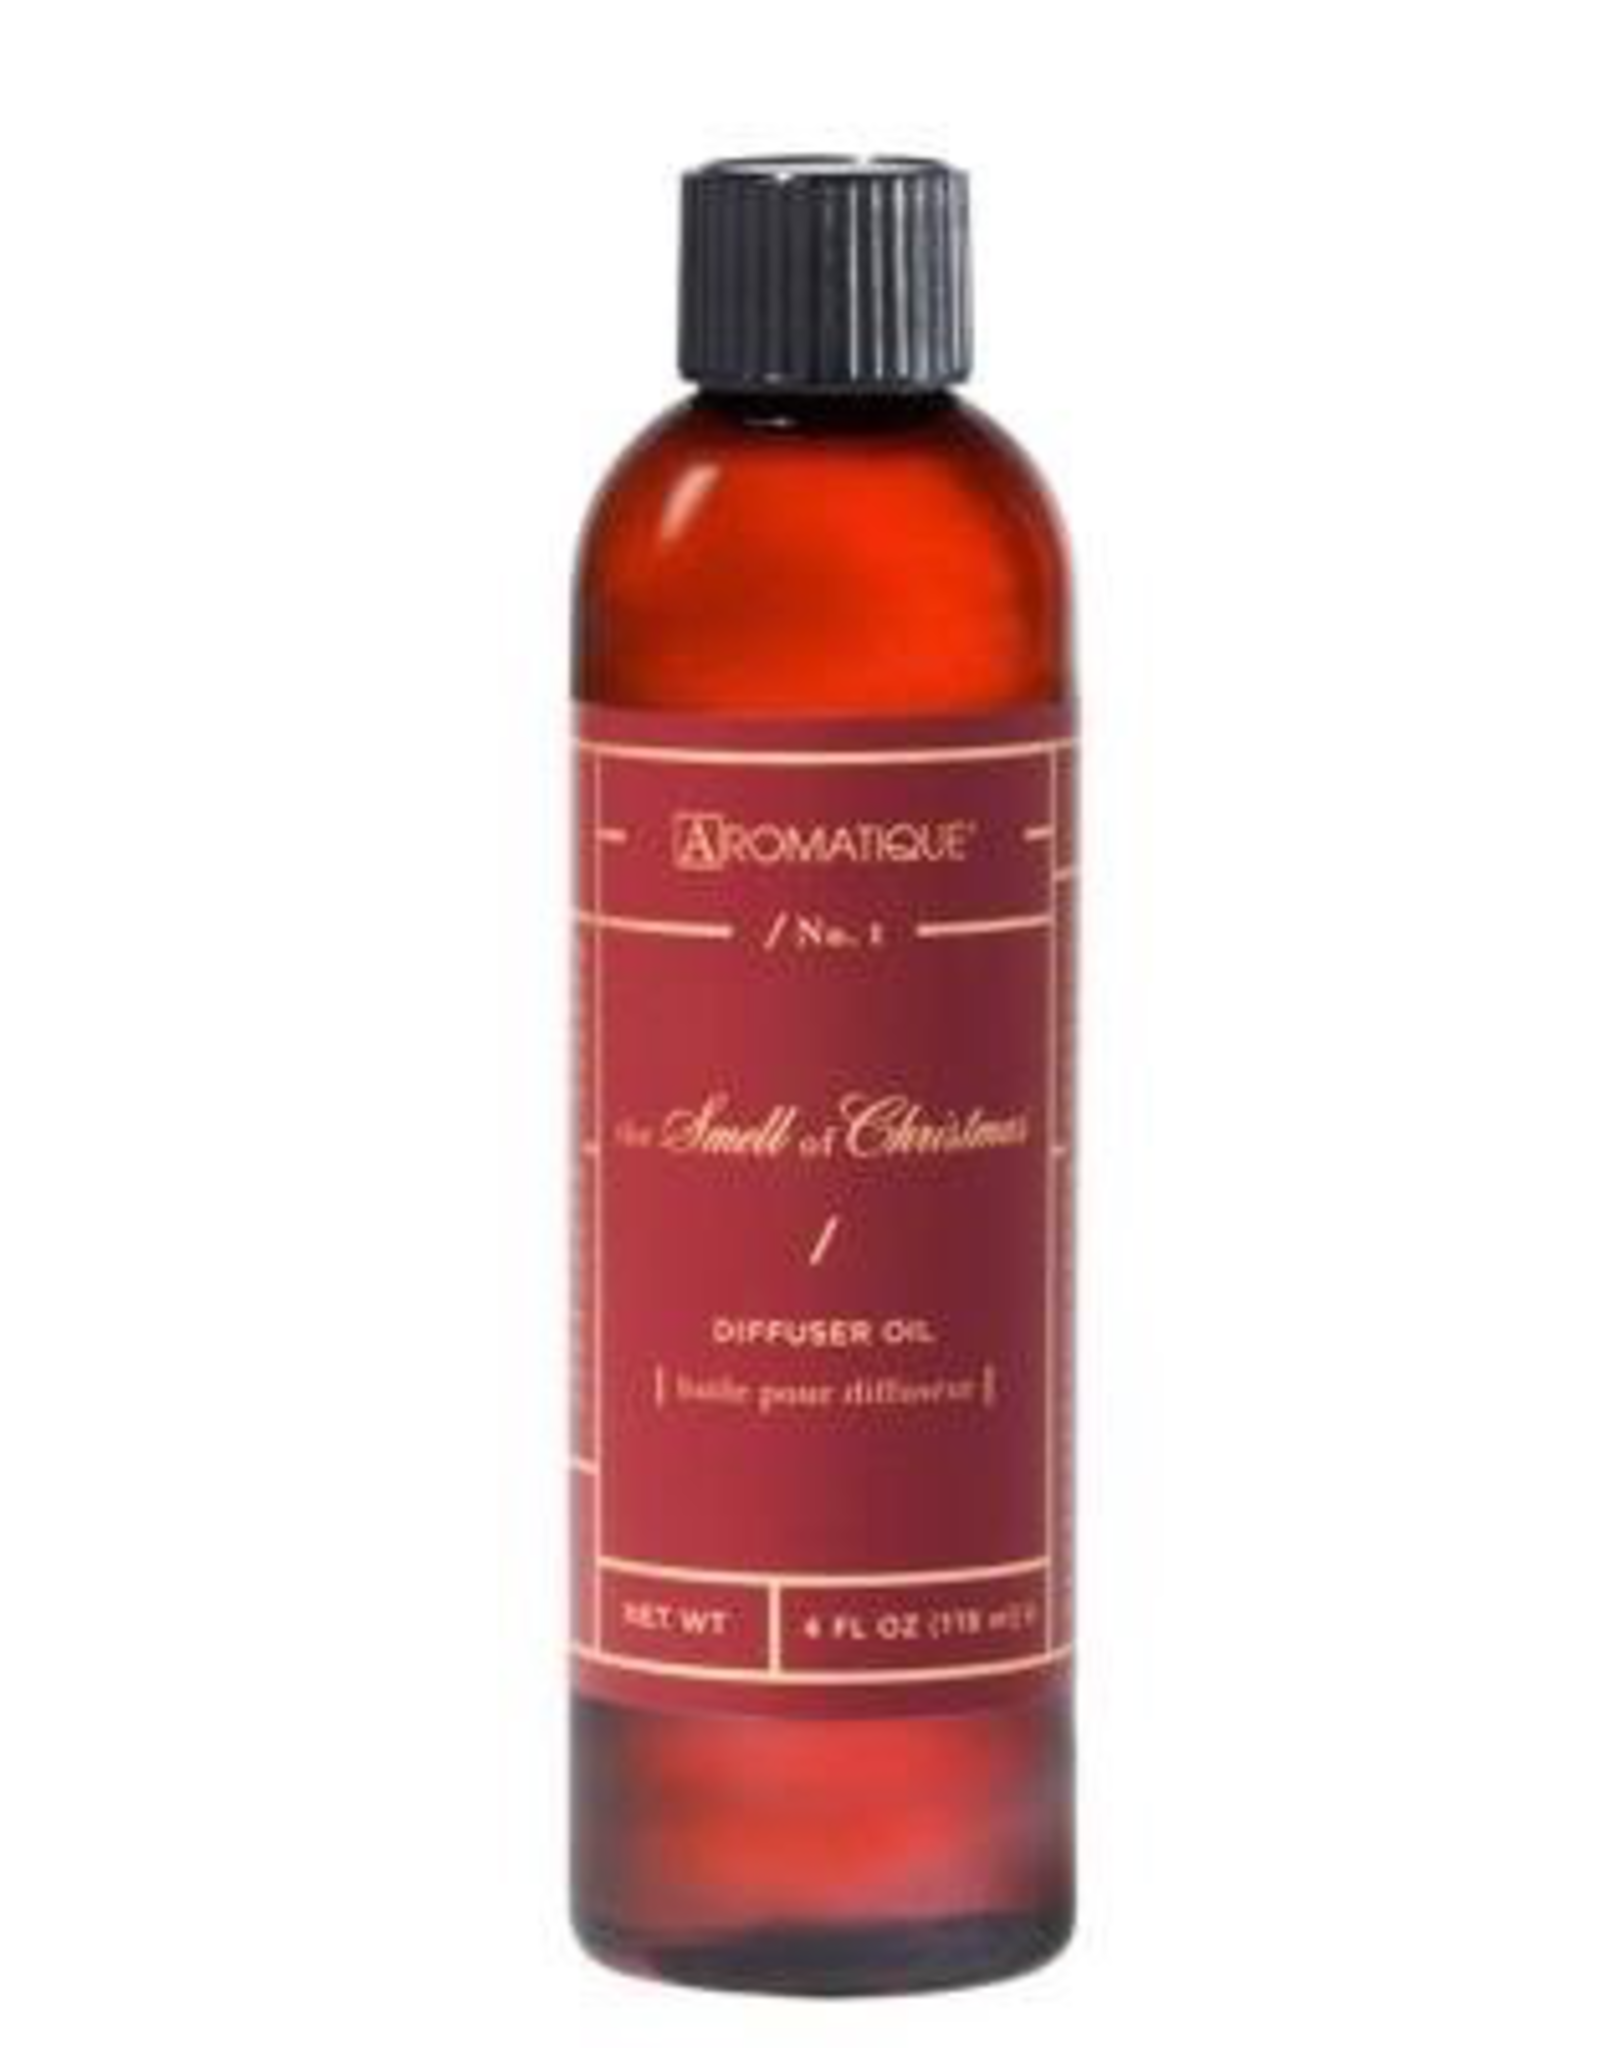 Aromatique The Smell of Christmas Diffuser Oil 4 Oz